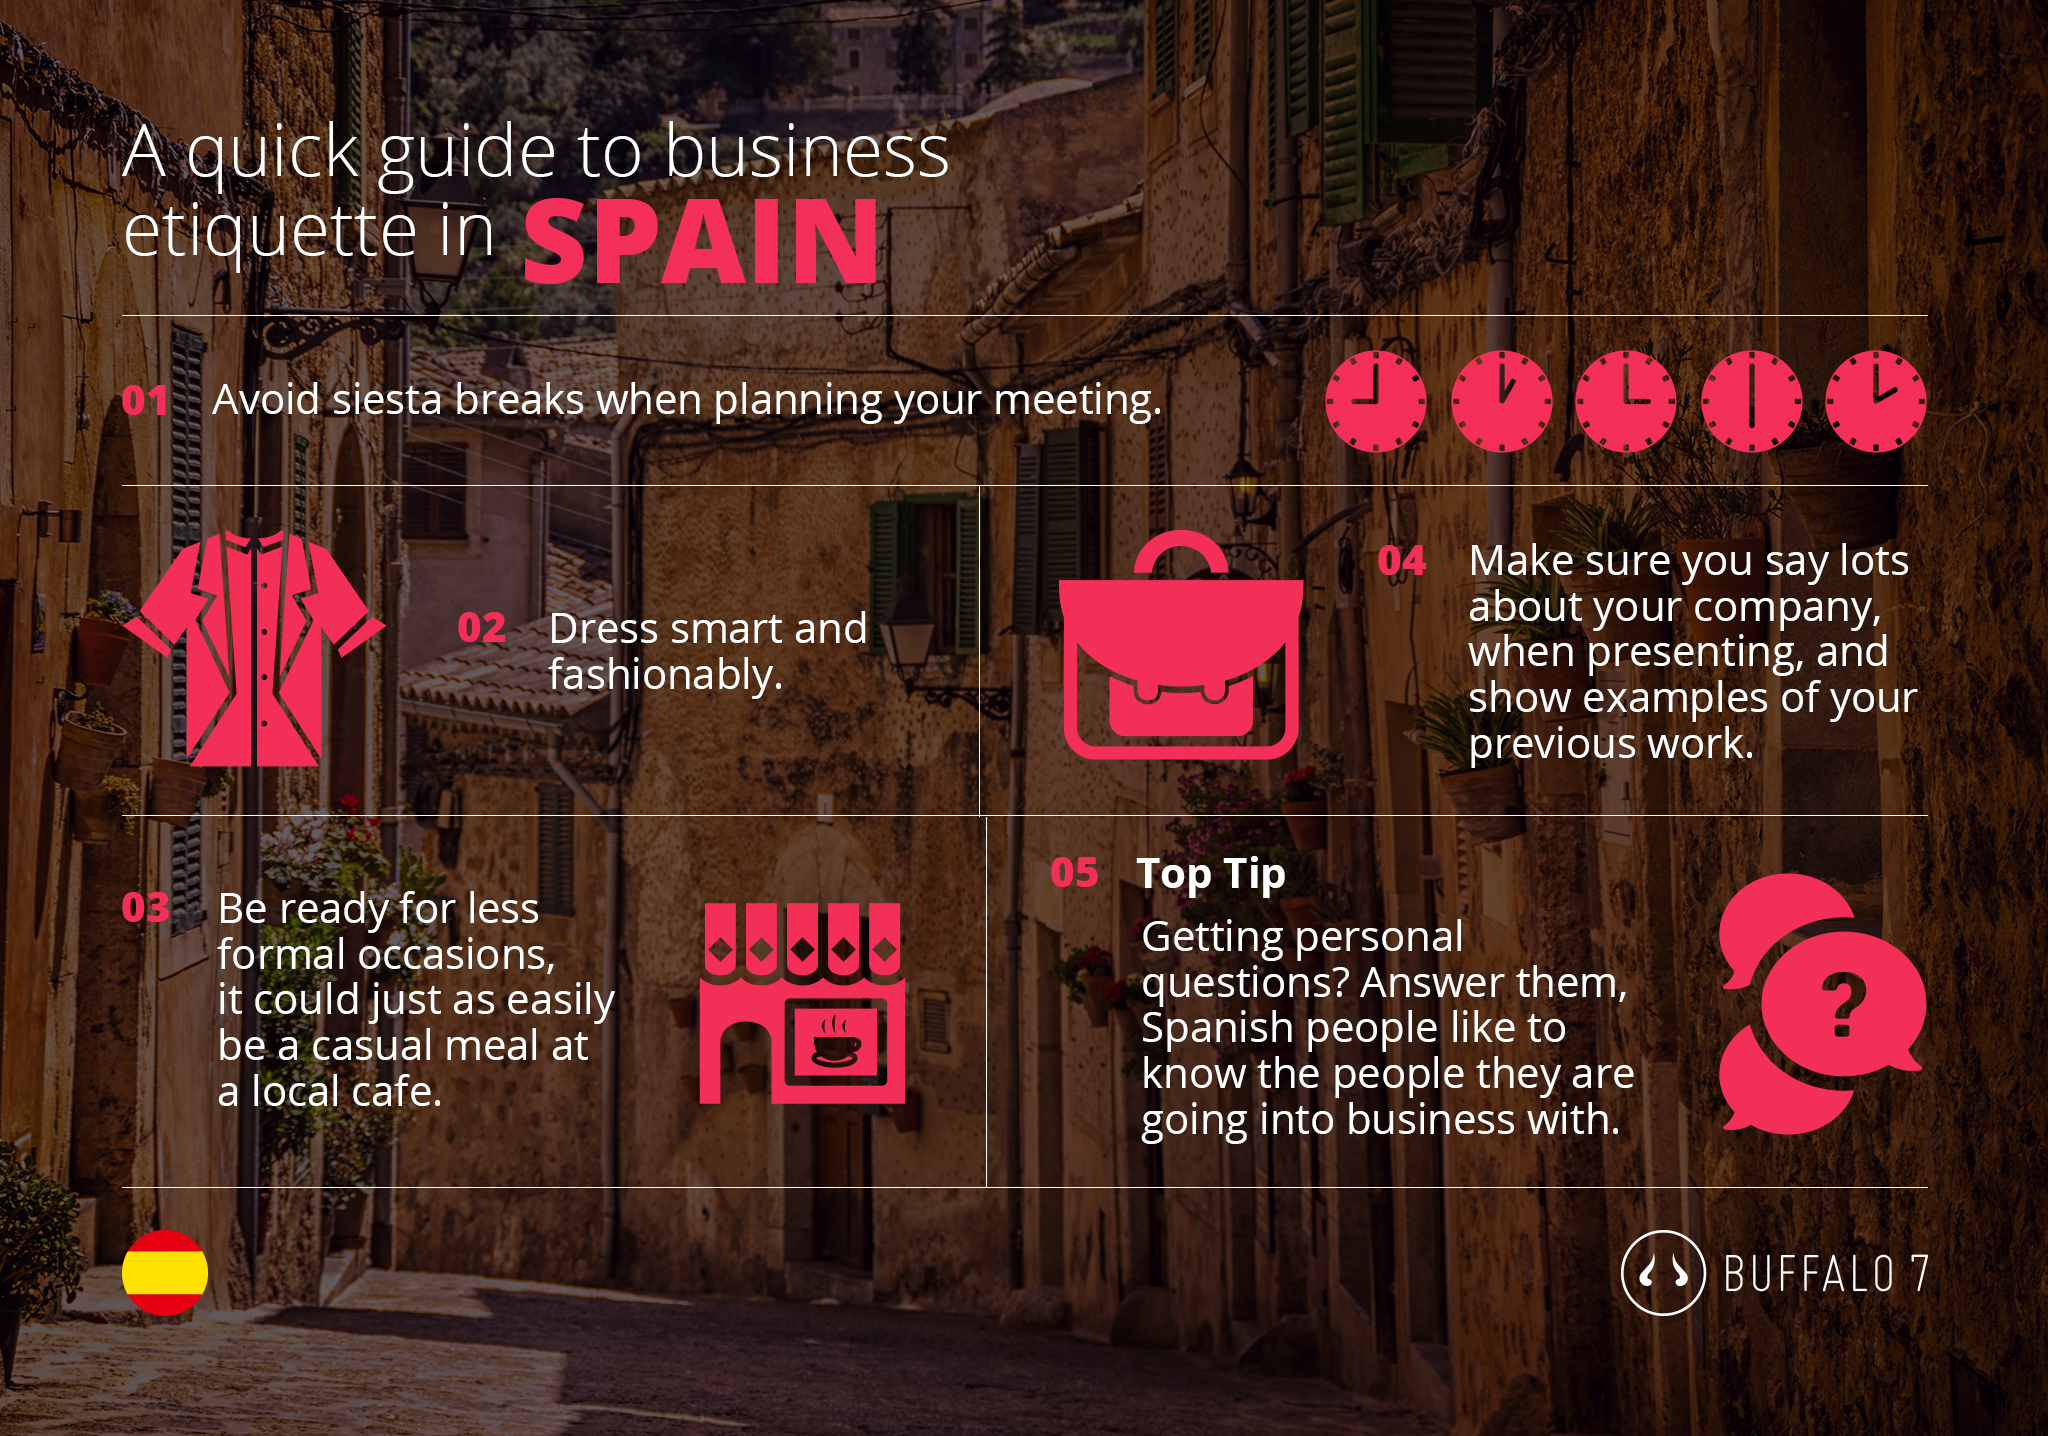 tips on spanish business etiquette